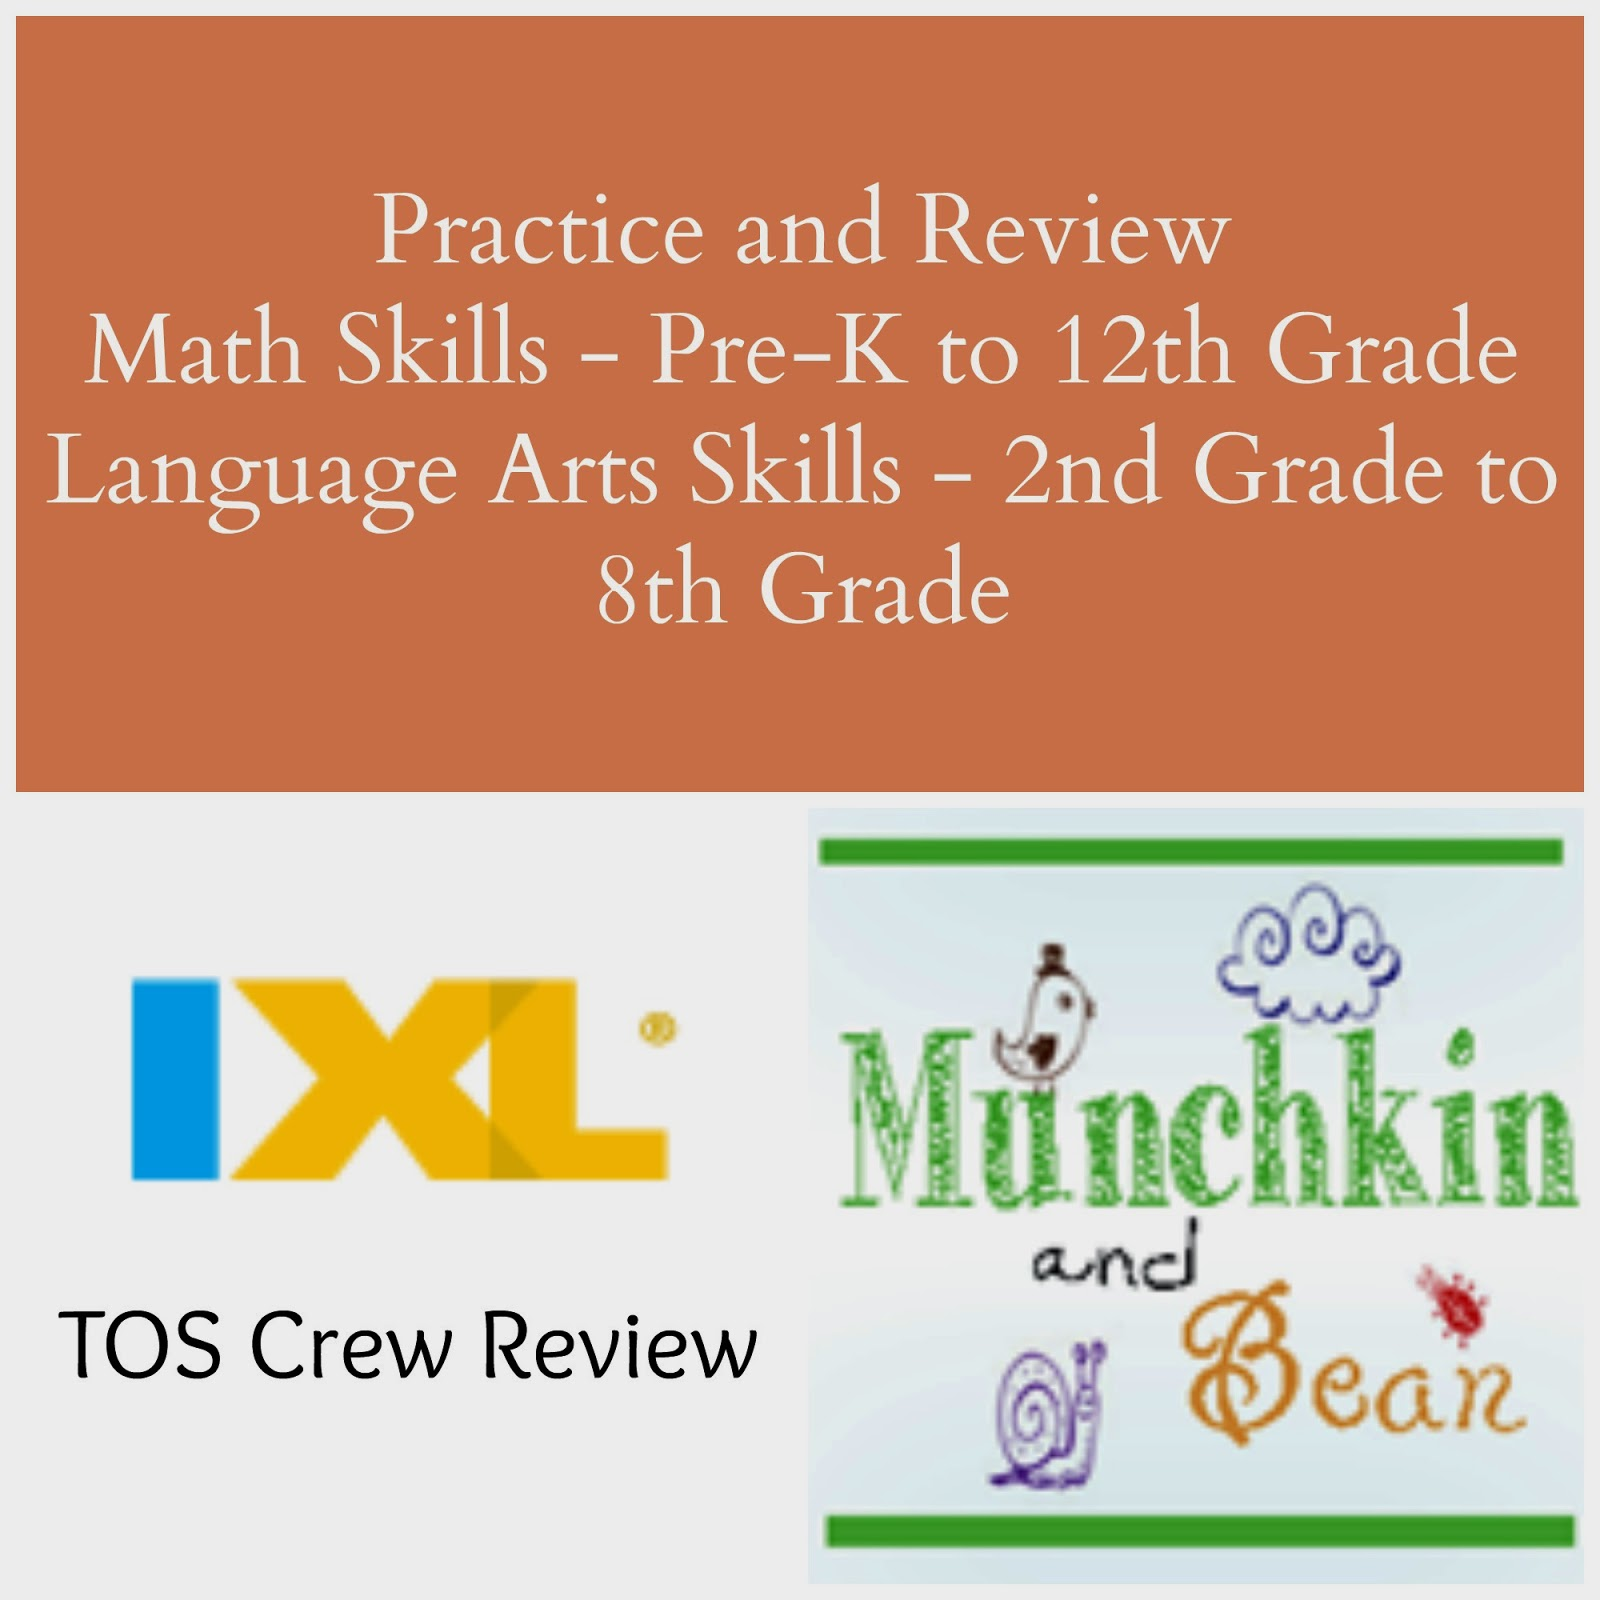 Munchkin and Bean: IXL Review